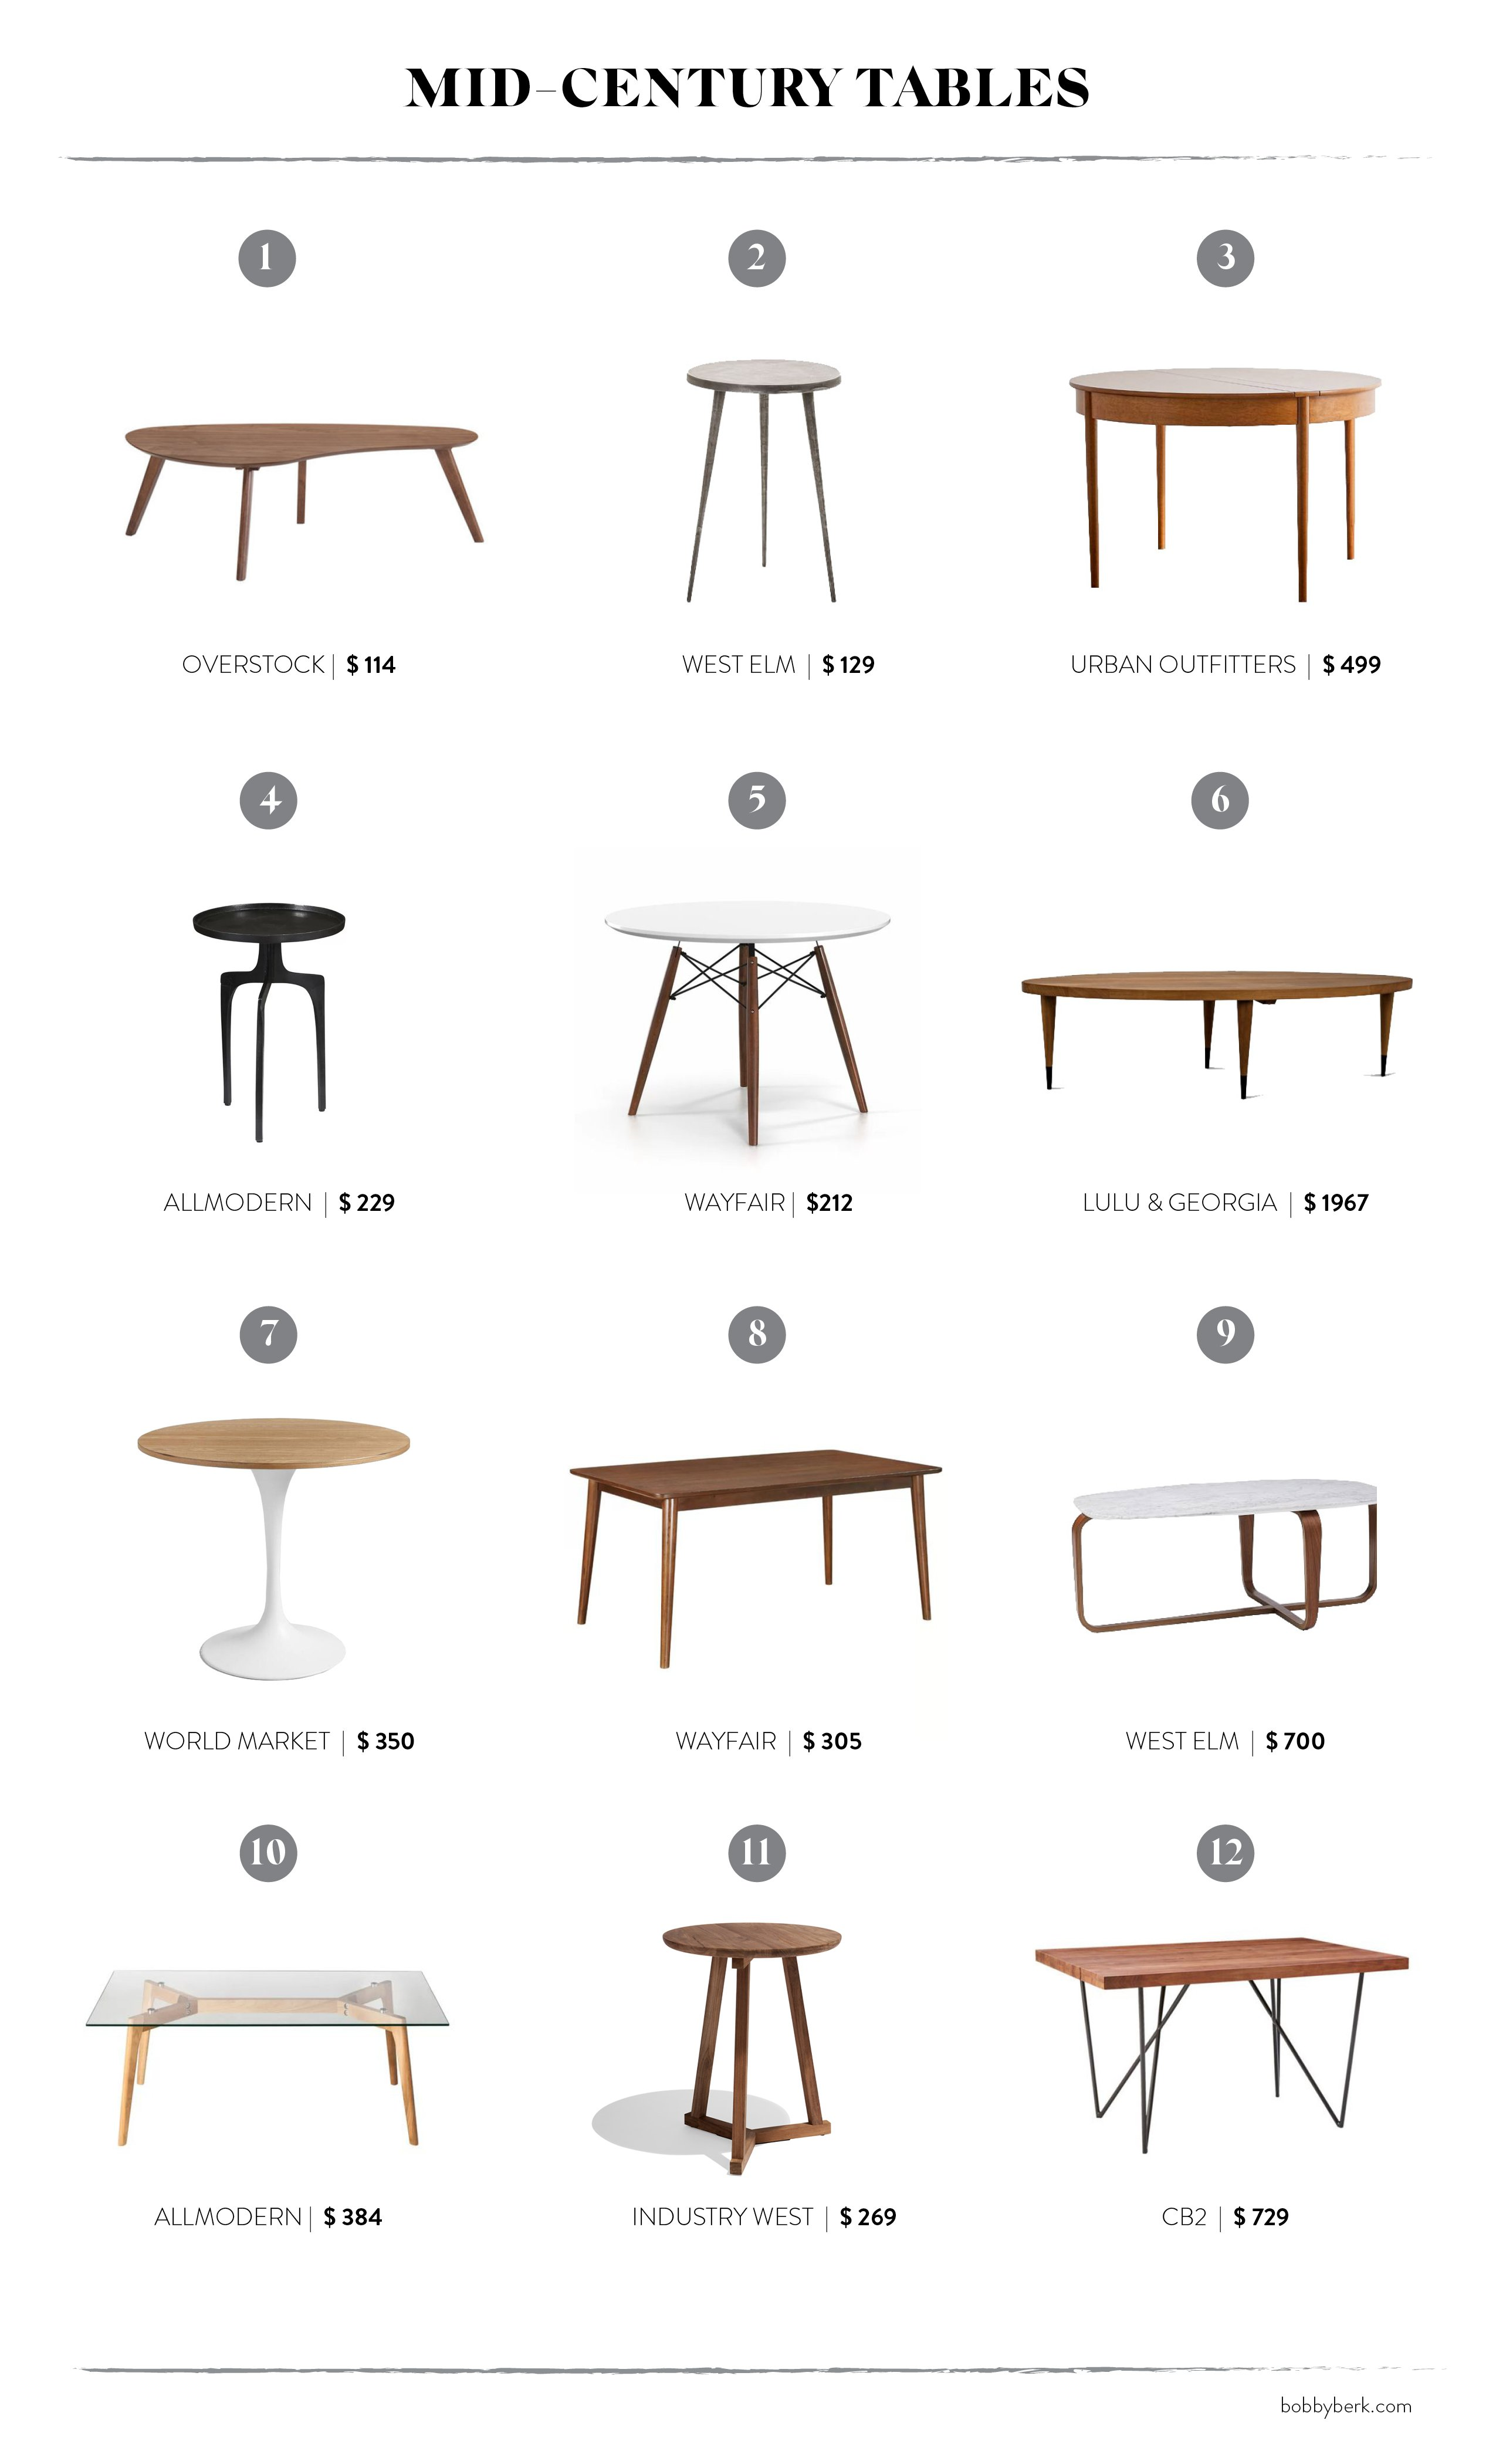 Mid Century Modern Furniture Everything You Need To Get The Look Bobby Berk